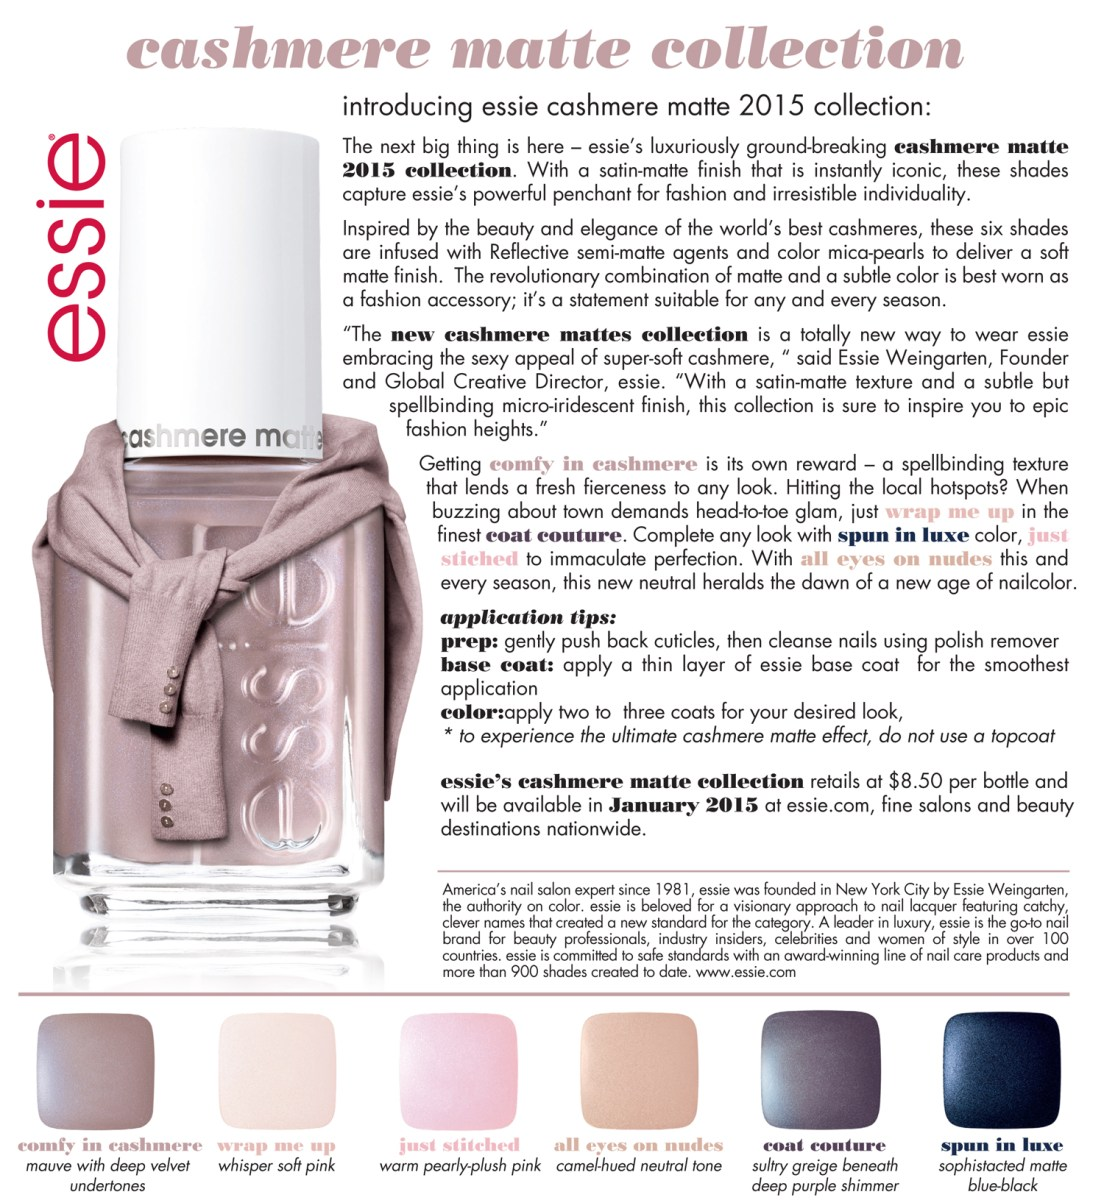 A CLOSER LOOK: ESSIE CASHMERE COLLECTION